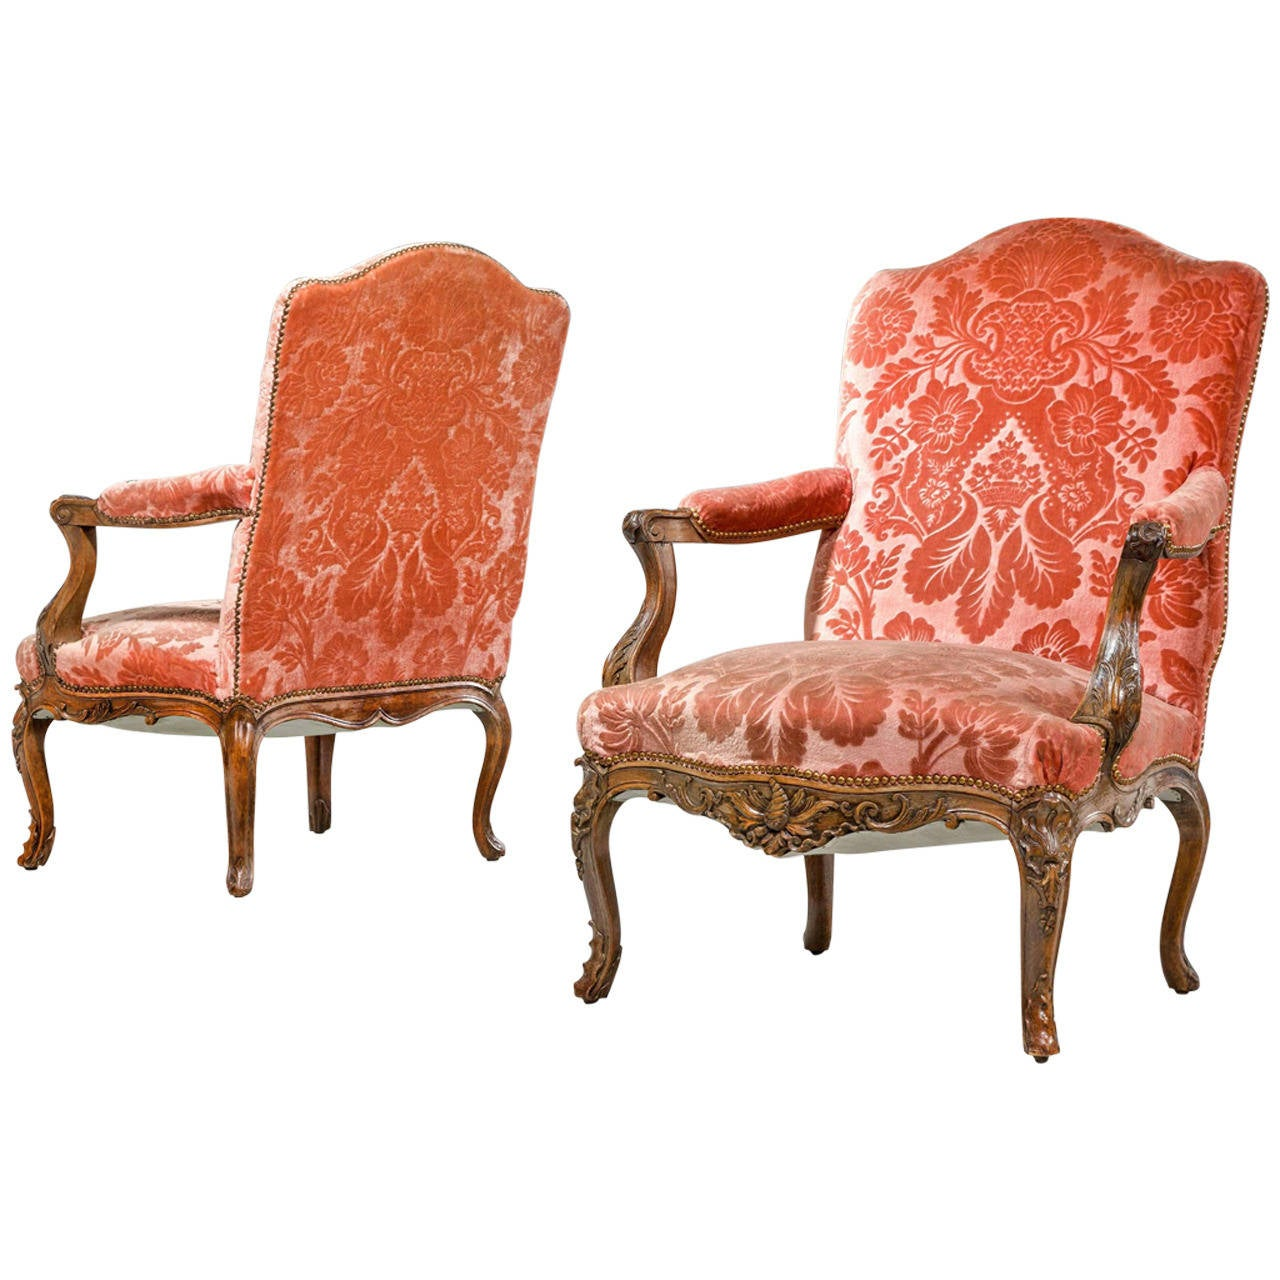 Pair Of Louis XIV Design Fauteuils For Sale At Stdibs - Fauteuil louis xiv